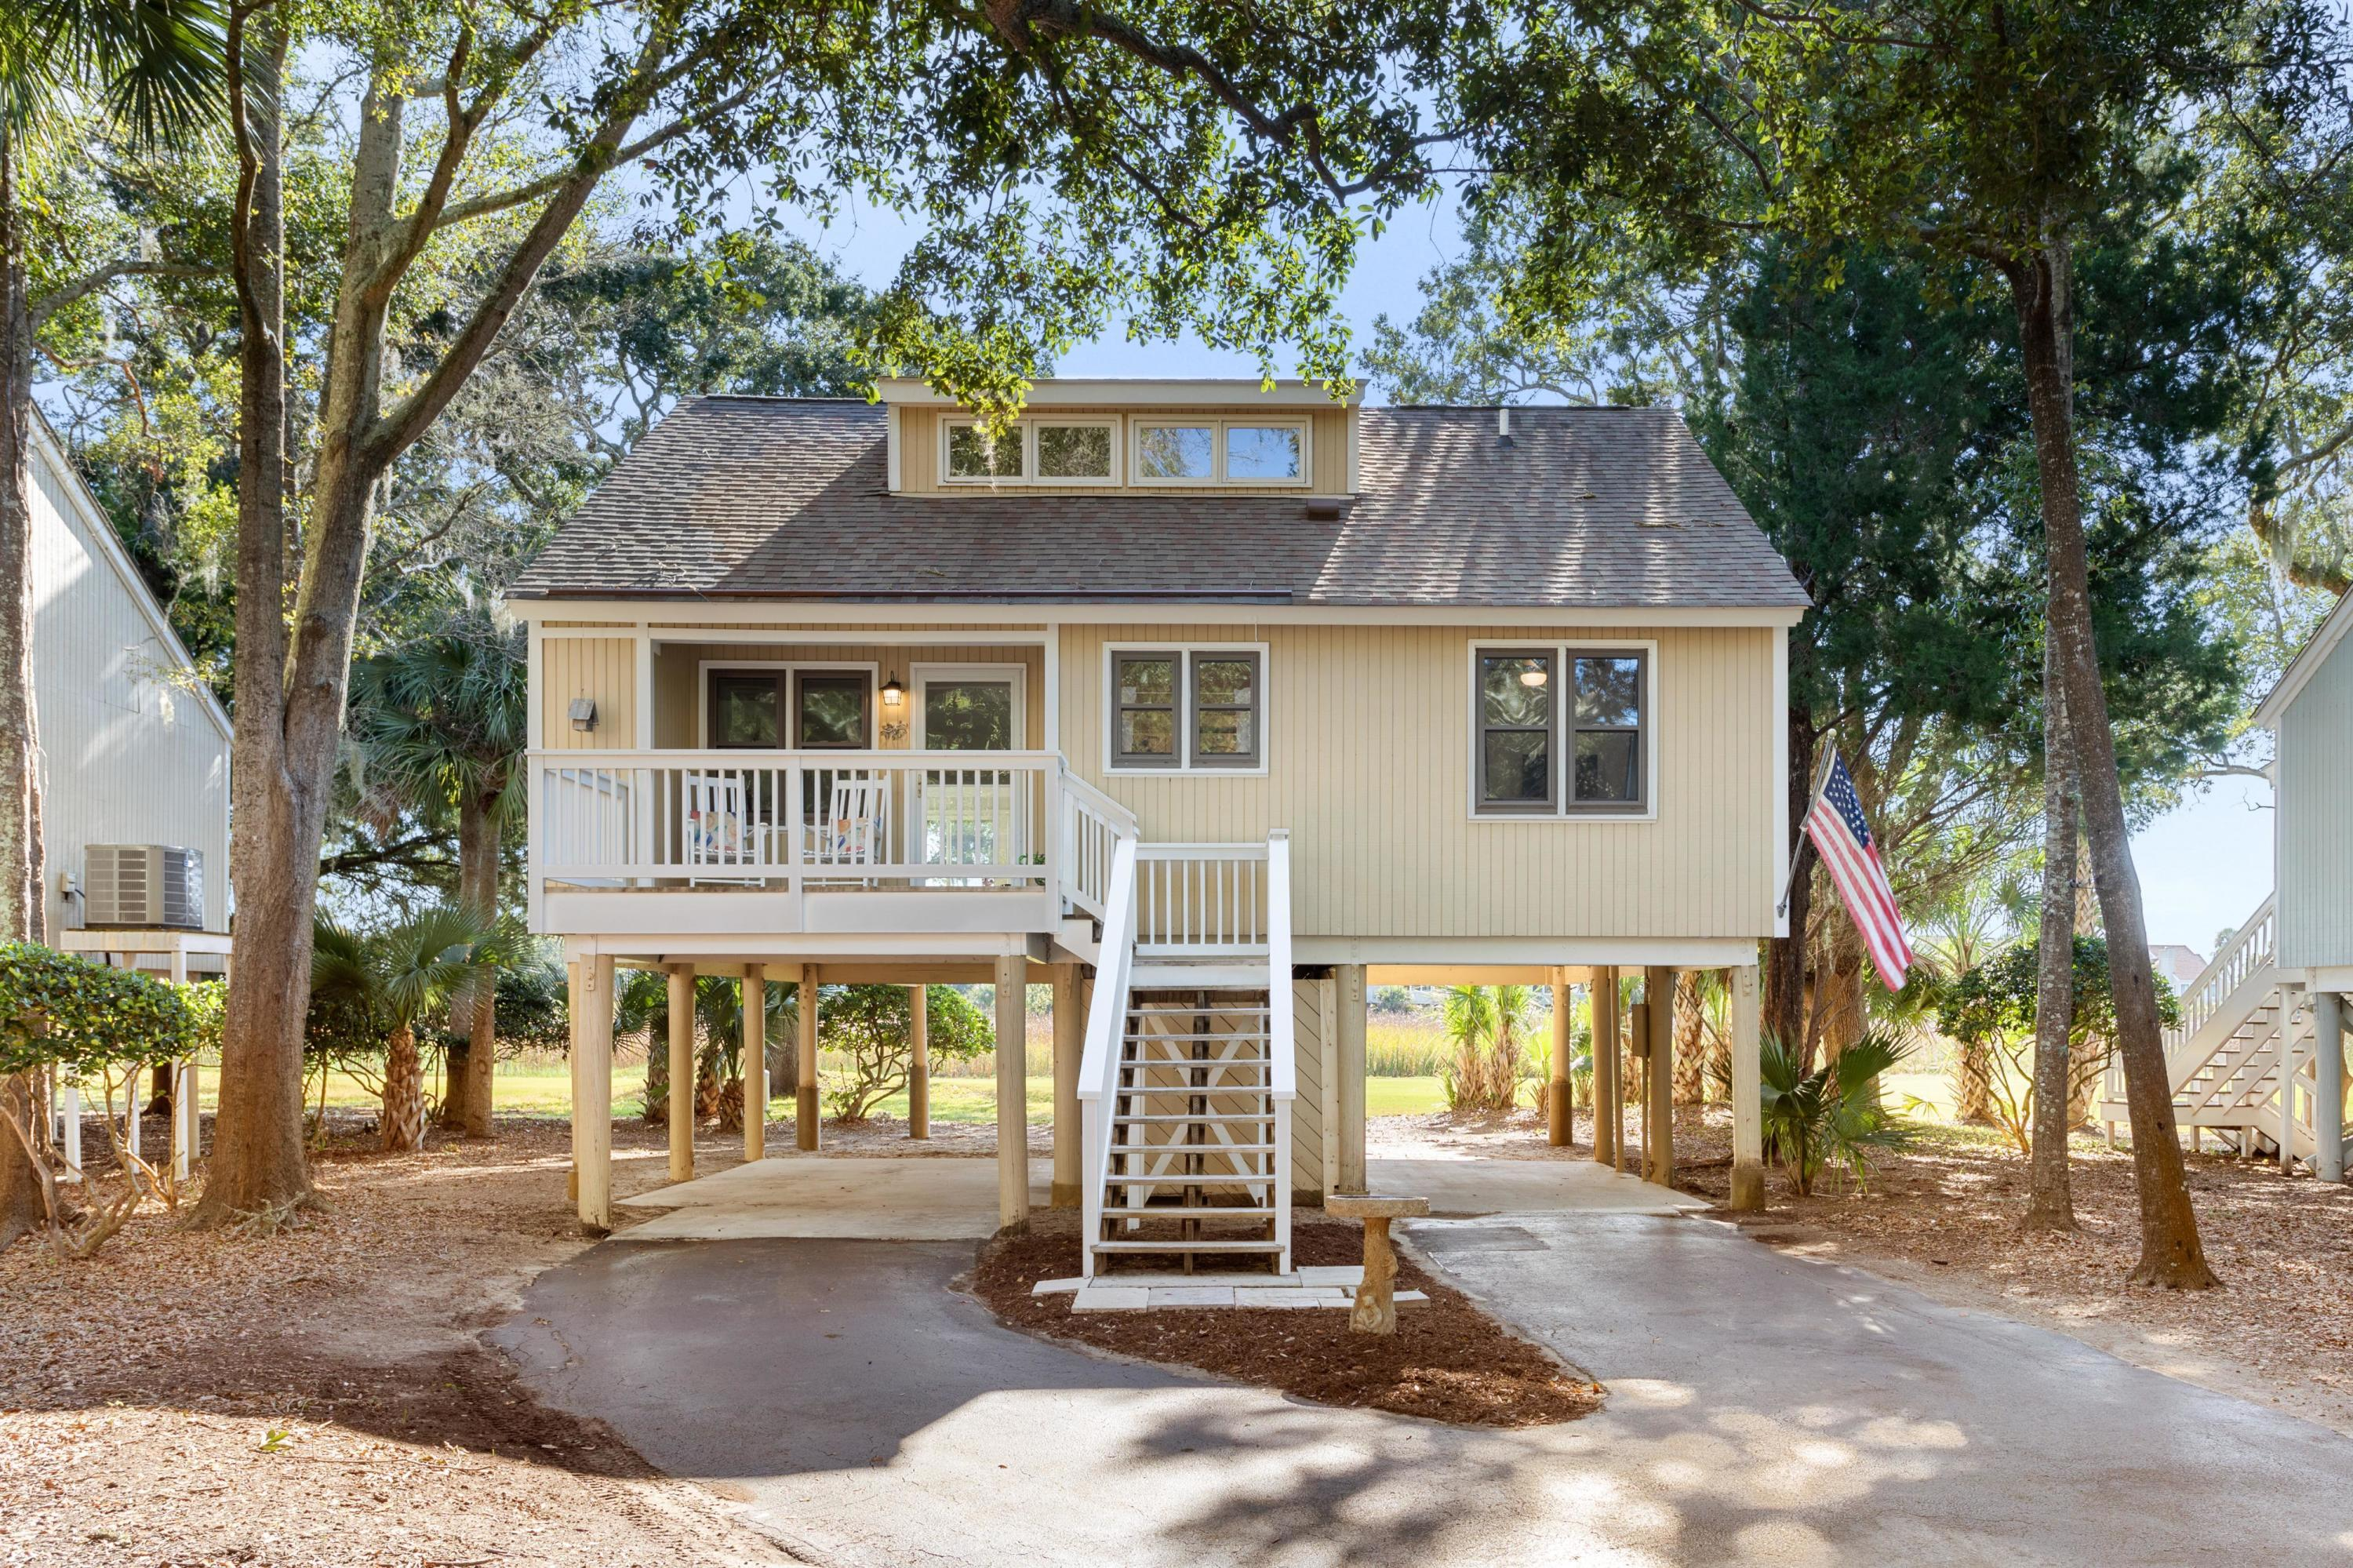 545 Cobby Creek Lane Seabrook Island, SC 29455